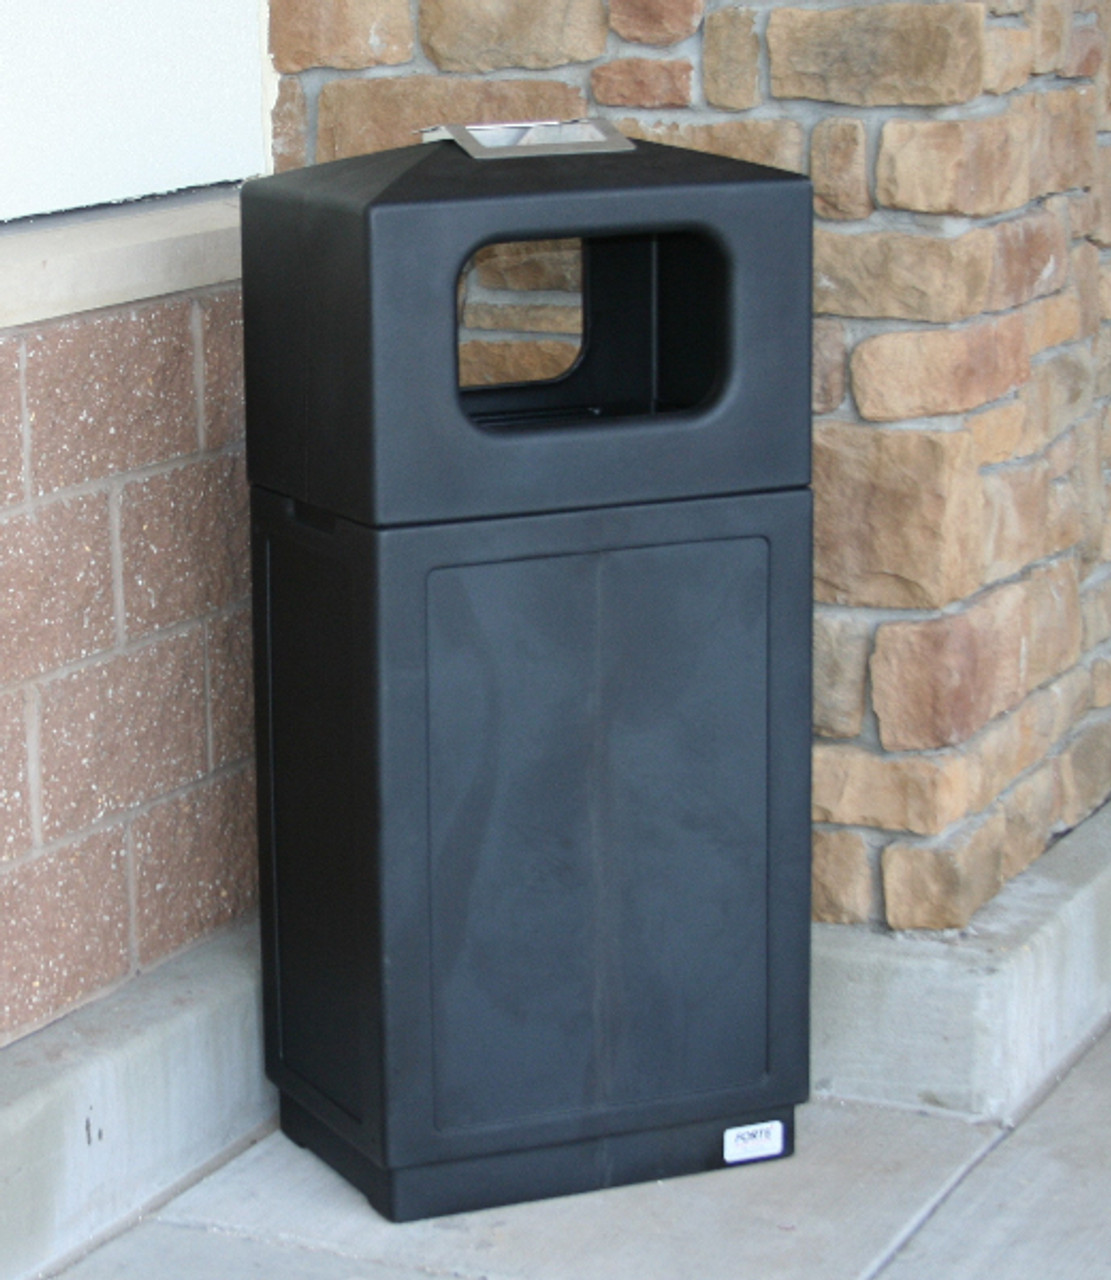 39 Gallon 2 Way Dome Top Outdoor Ash and Trash Can 8002155 Black